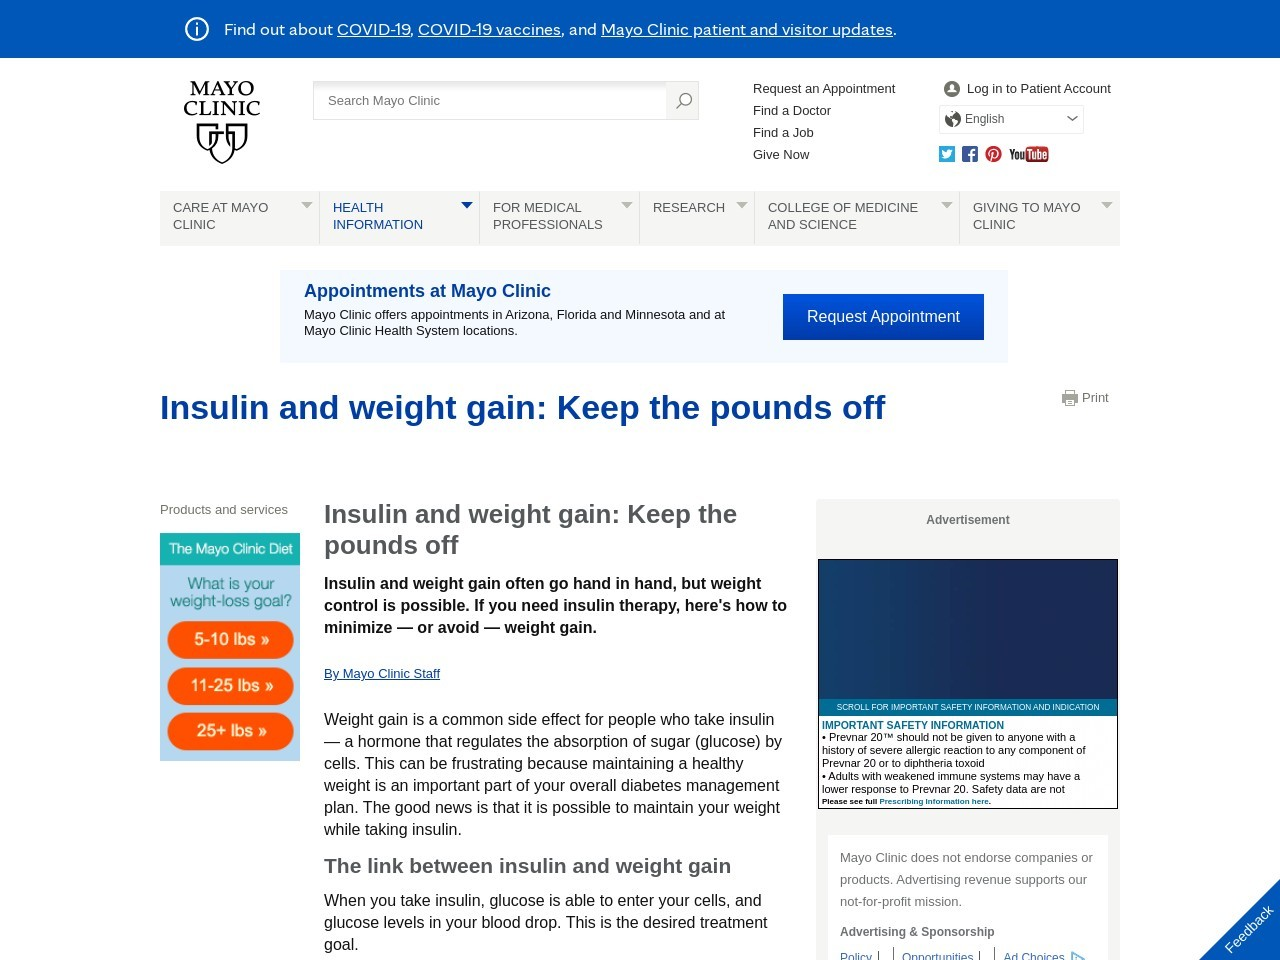 How to manage your weight on diabetes medicine